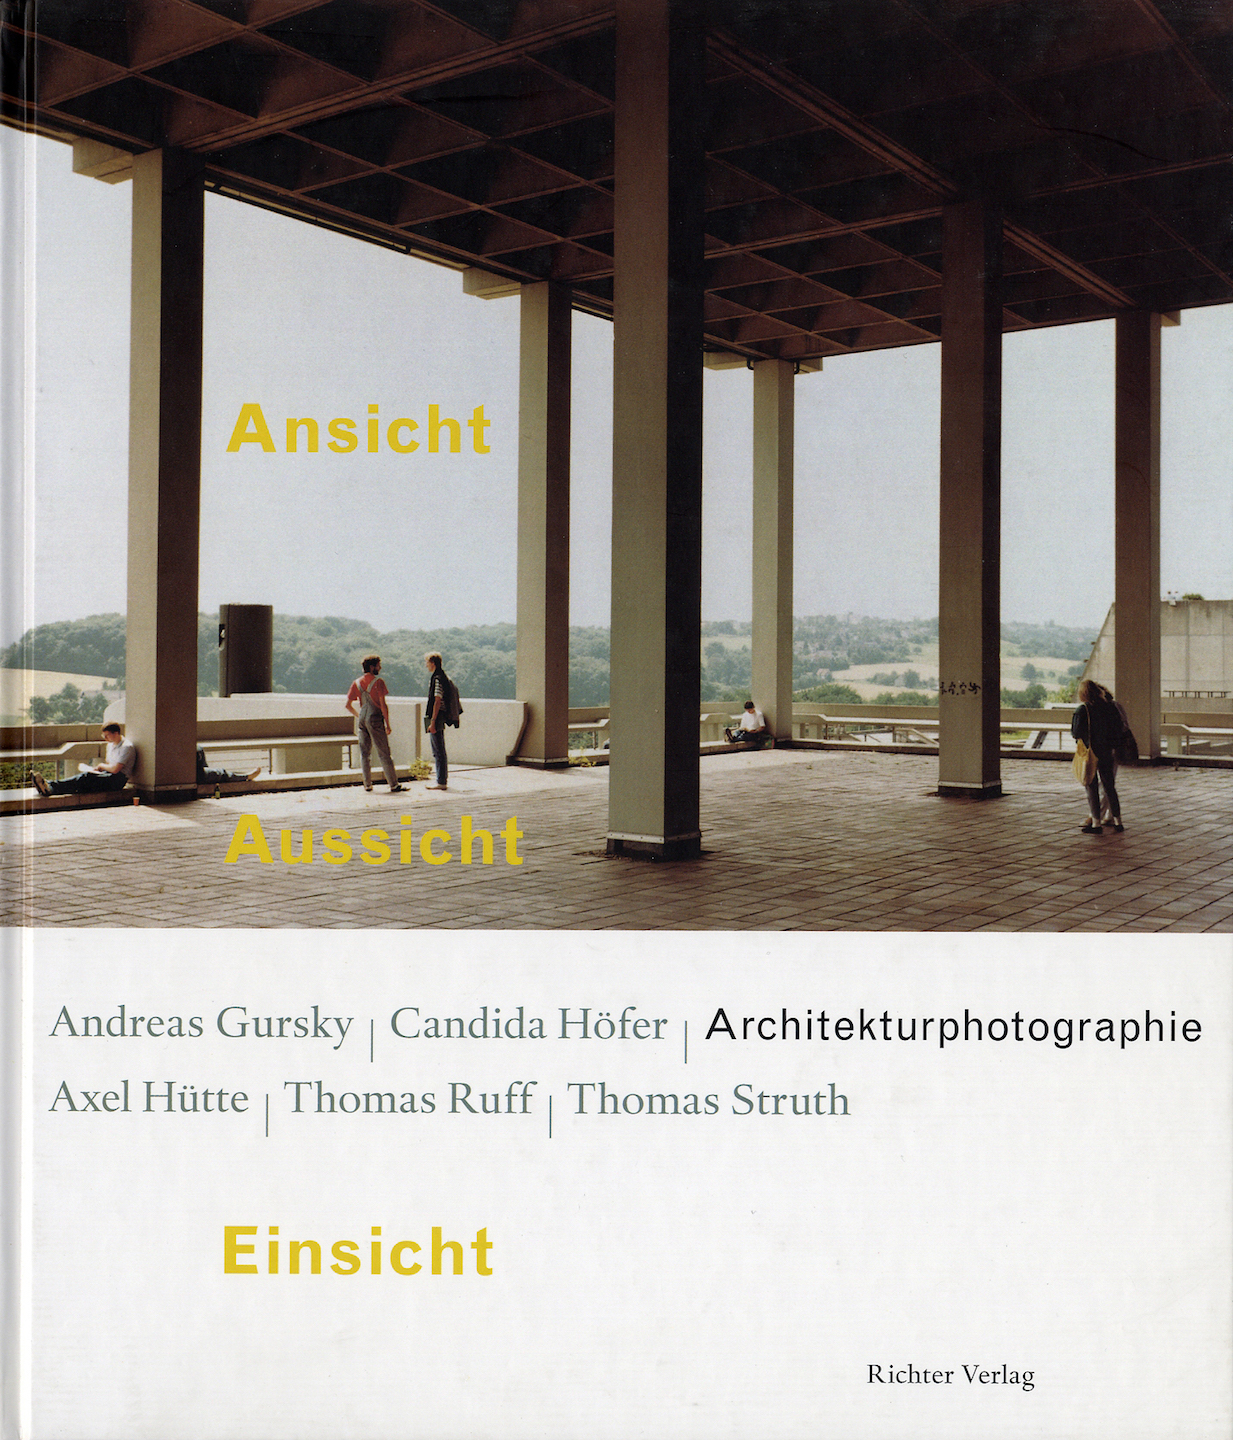 Ansicht -- Aussicht -- Einsicht, Architekturphotographie: Andreas Gursky, Candida Höfer, Axel Hütte, Thomas Ruff, Thomas Struth [Includes Exhibition Announcement SIGNED by Gursky, Ruff, and Struth]